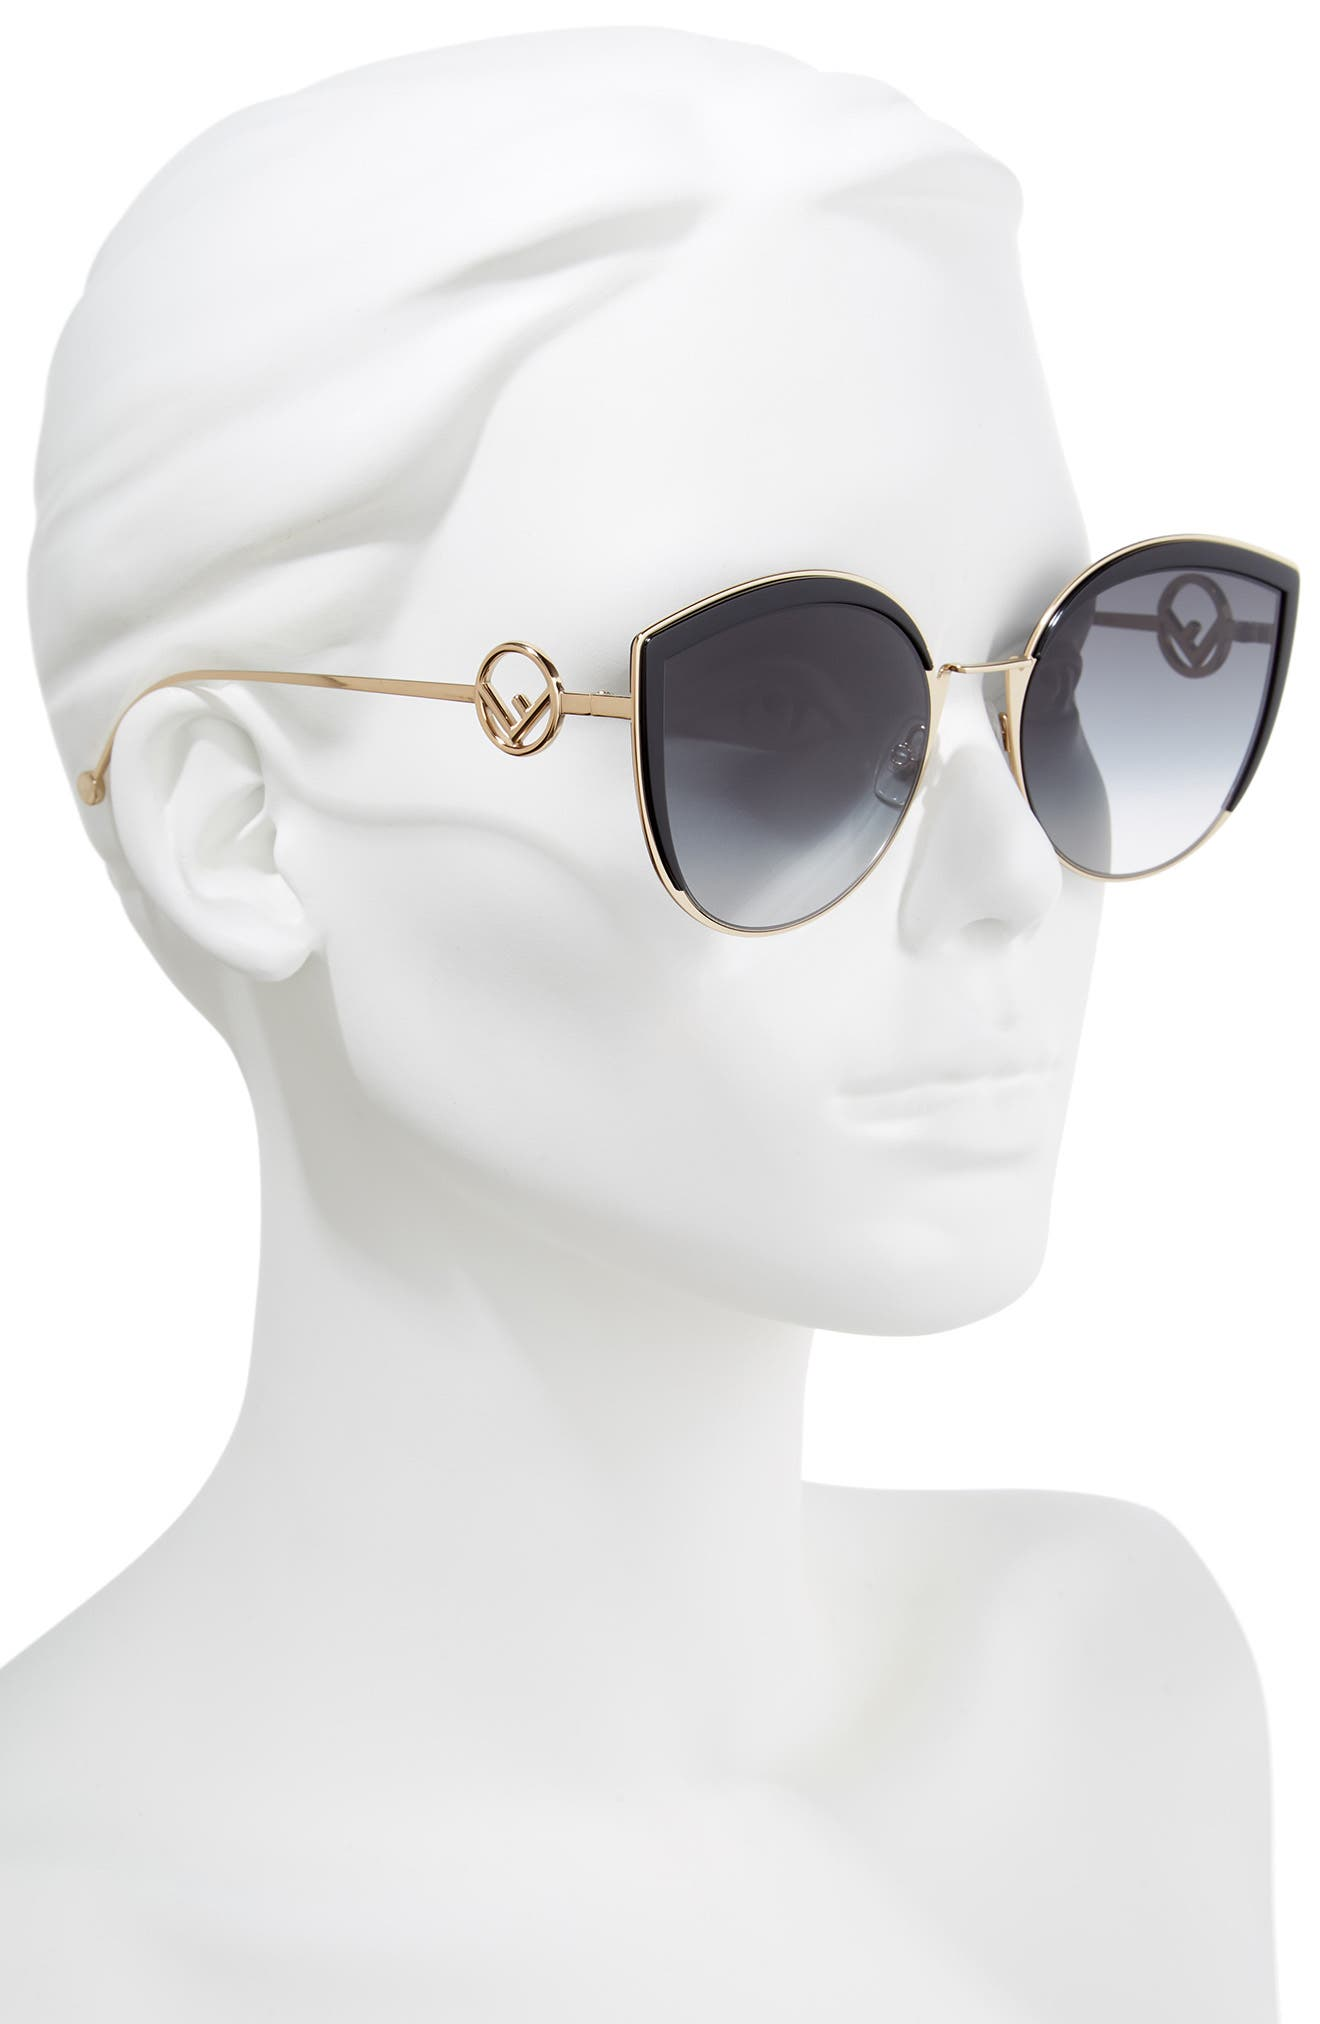 58mm Metal Butterfly Sunglasses,                             Alternate thumbnail 2, color,                             001